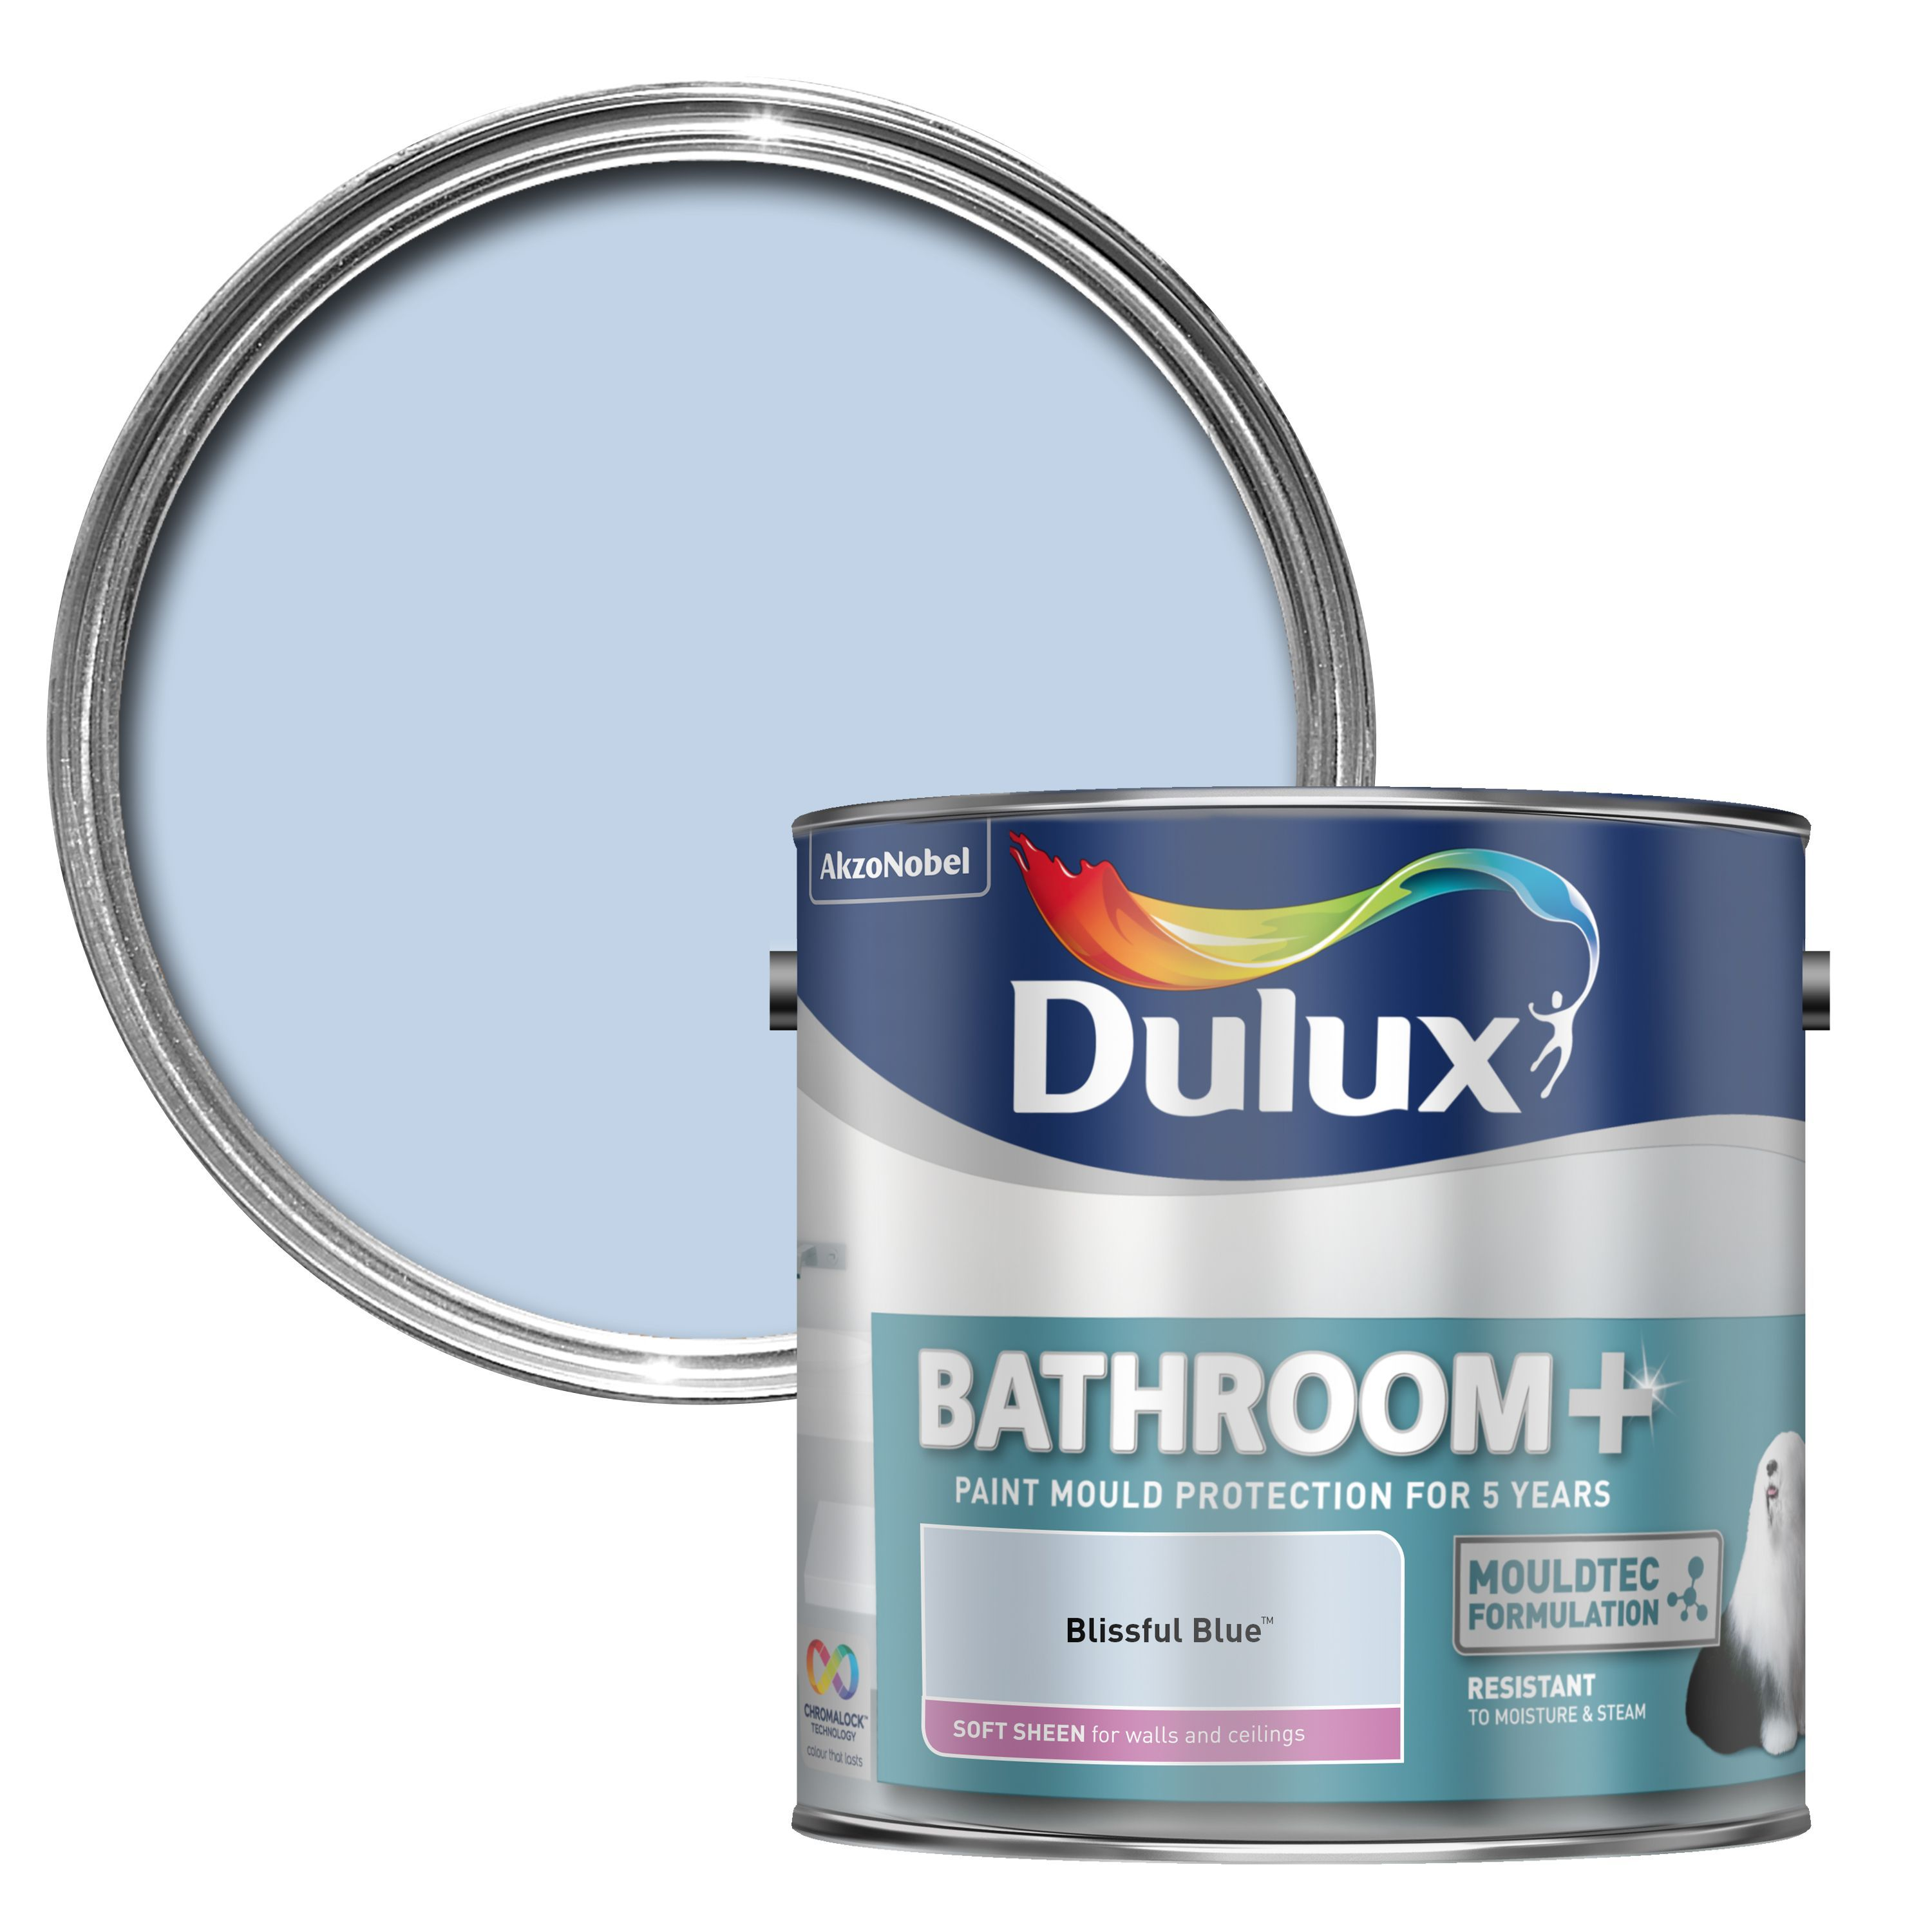 Dulux bathroom blissful blue soft sheen emulsion paint 2 5l departments diy at b q for What paint sheen for bathroom